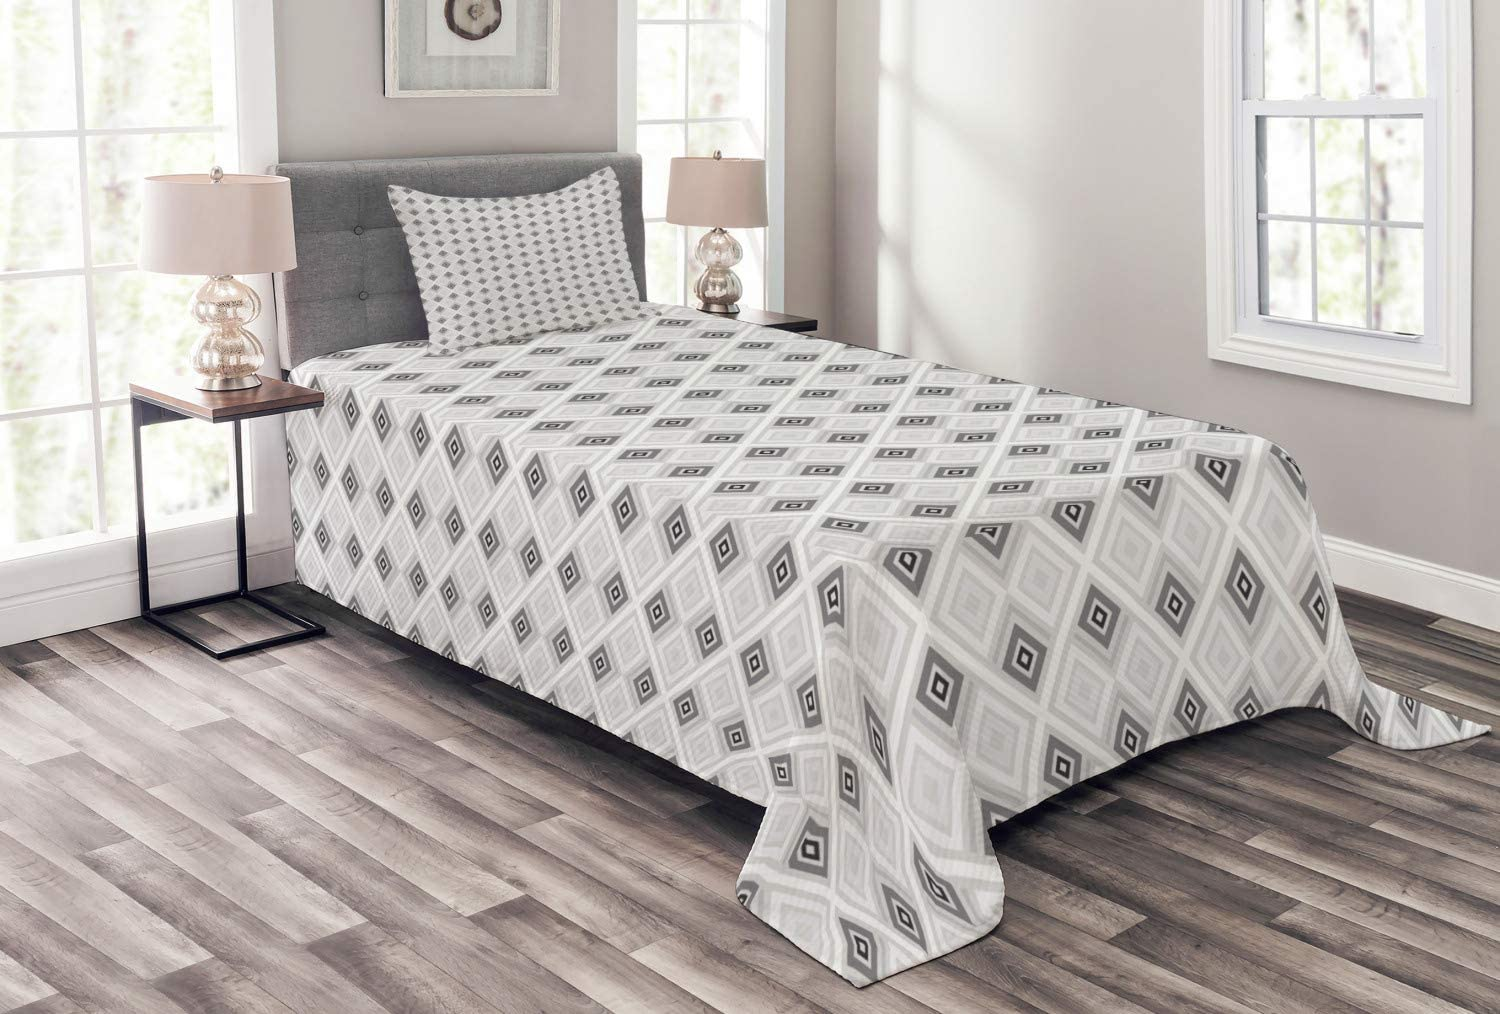 Ambesonne Edgy Bedspread Retro Style i and Rhombus Lines New life Stripe Tampa Mall